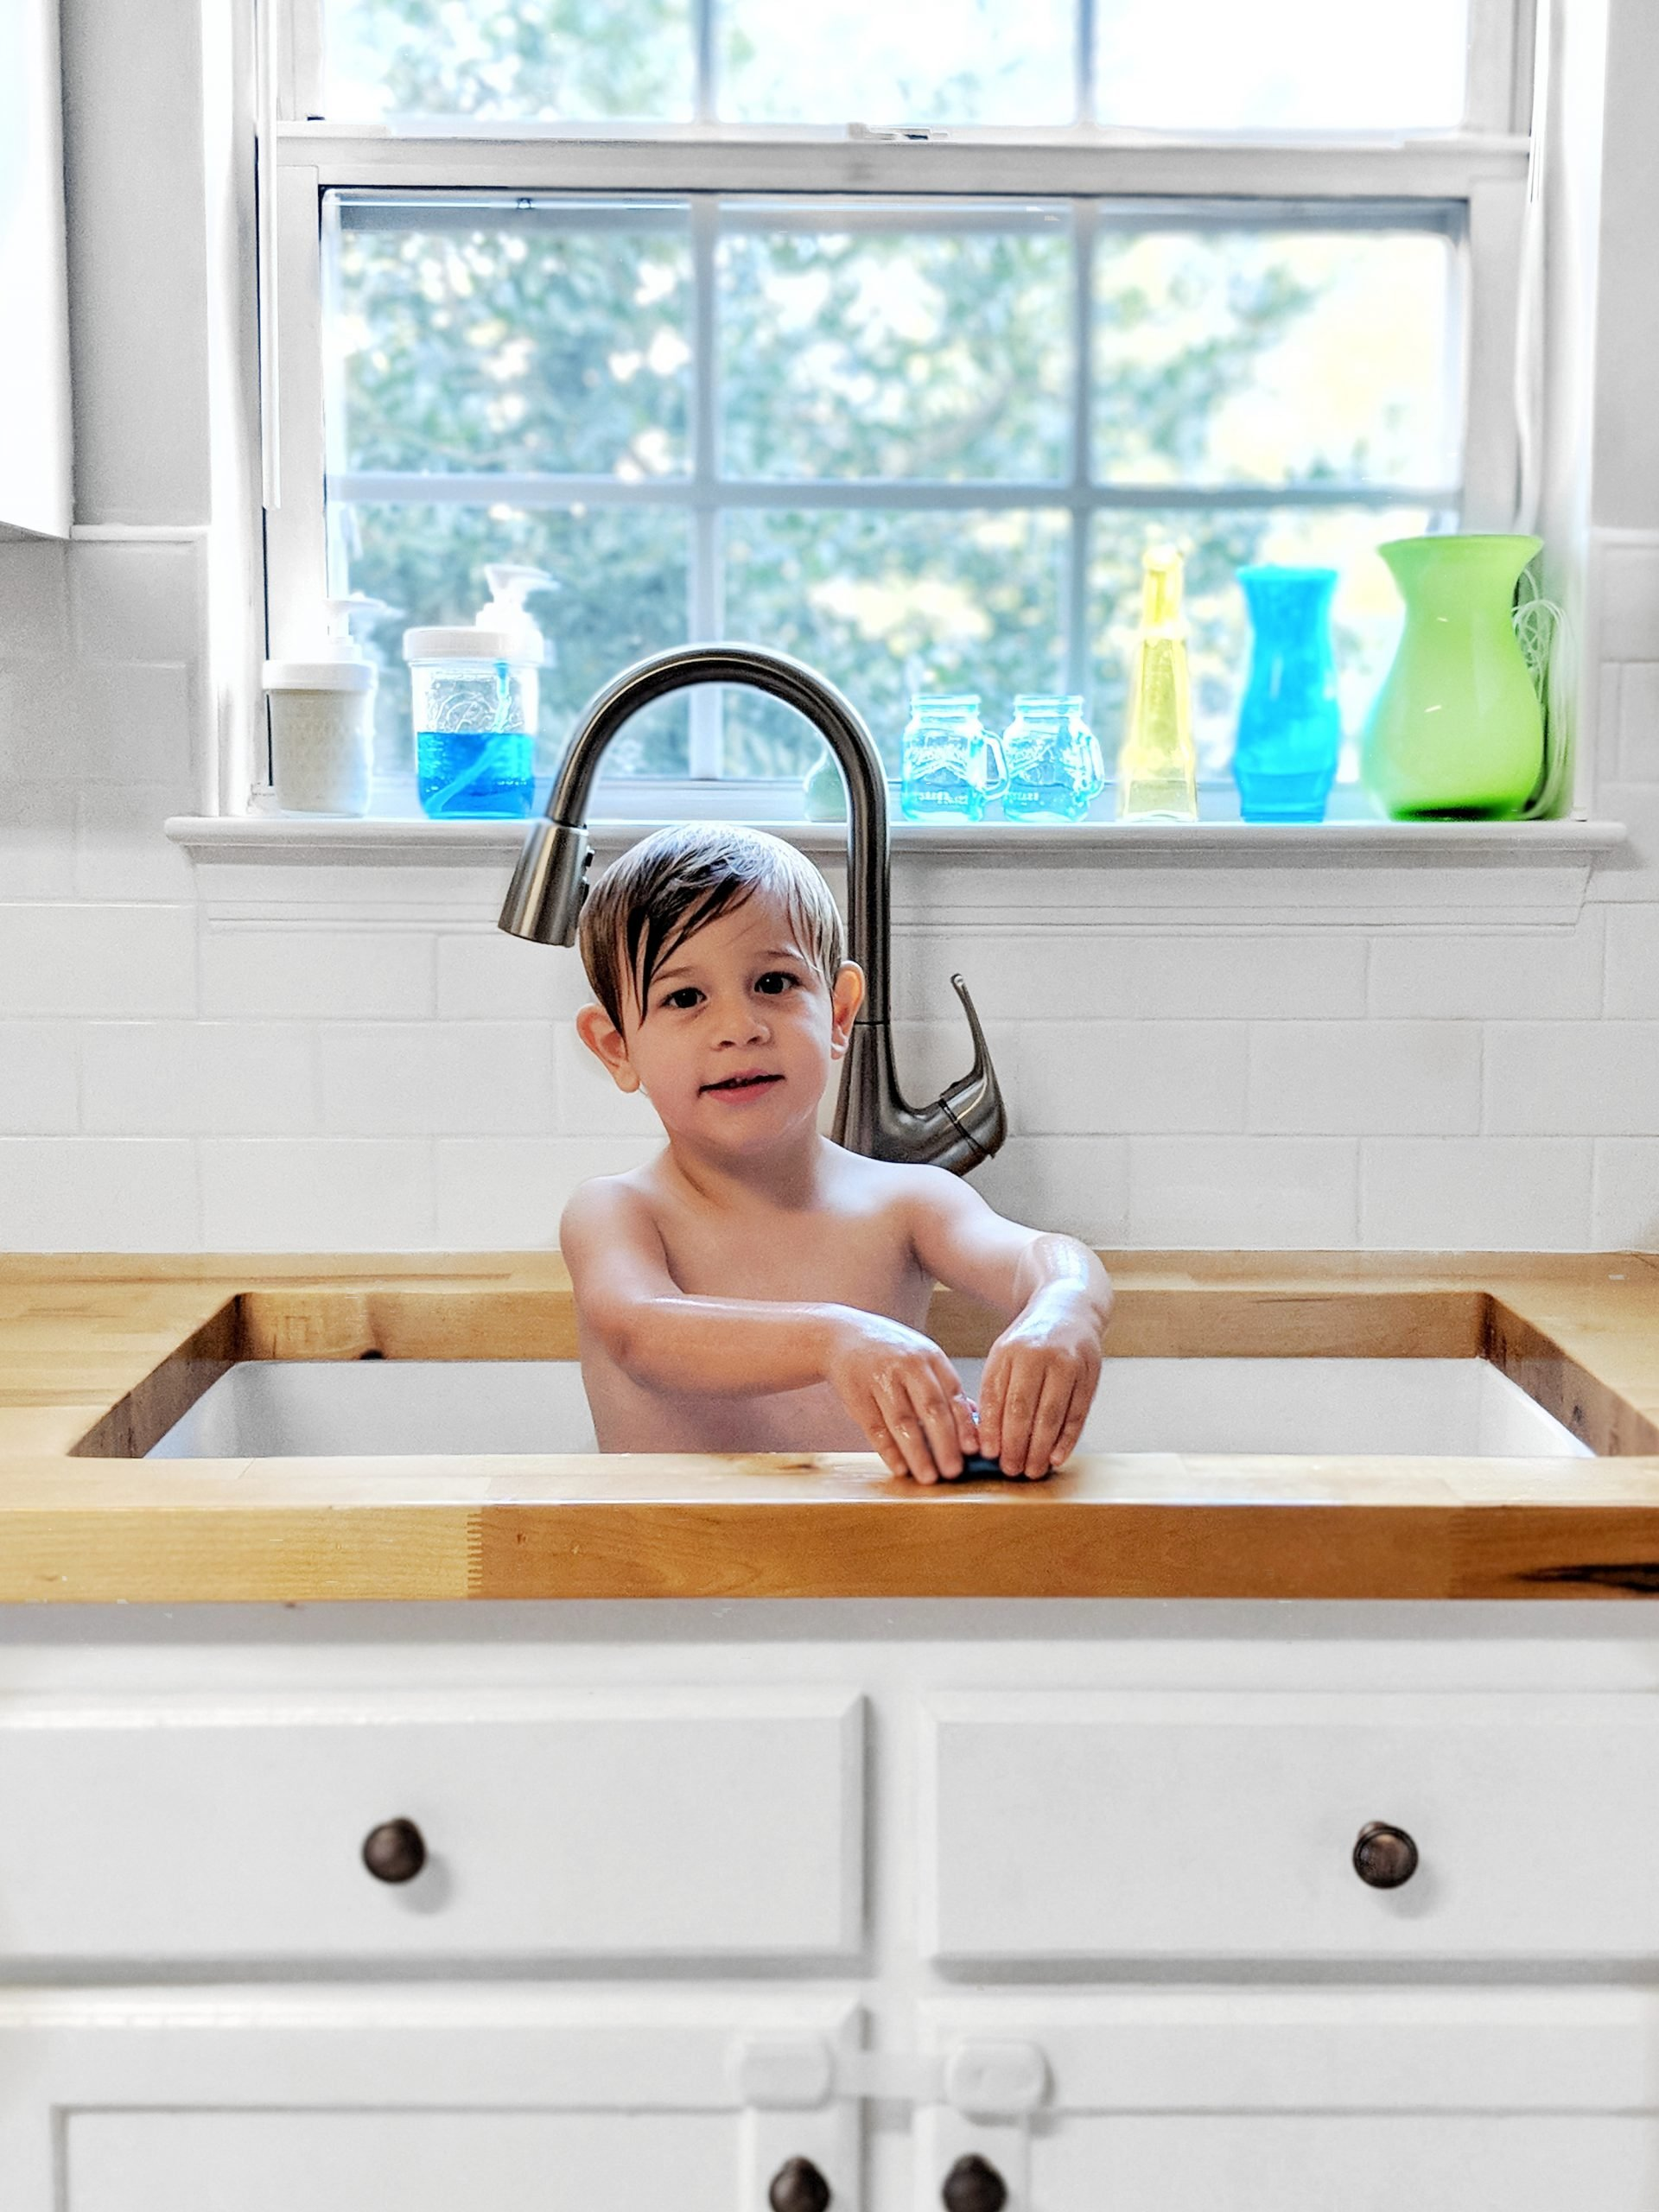 best part of the diy kitchen remodel - switching to a huge new single basin sink. a child takes a bath in the gigantic white sink. butcher block counters and subway tile backsplash